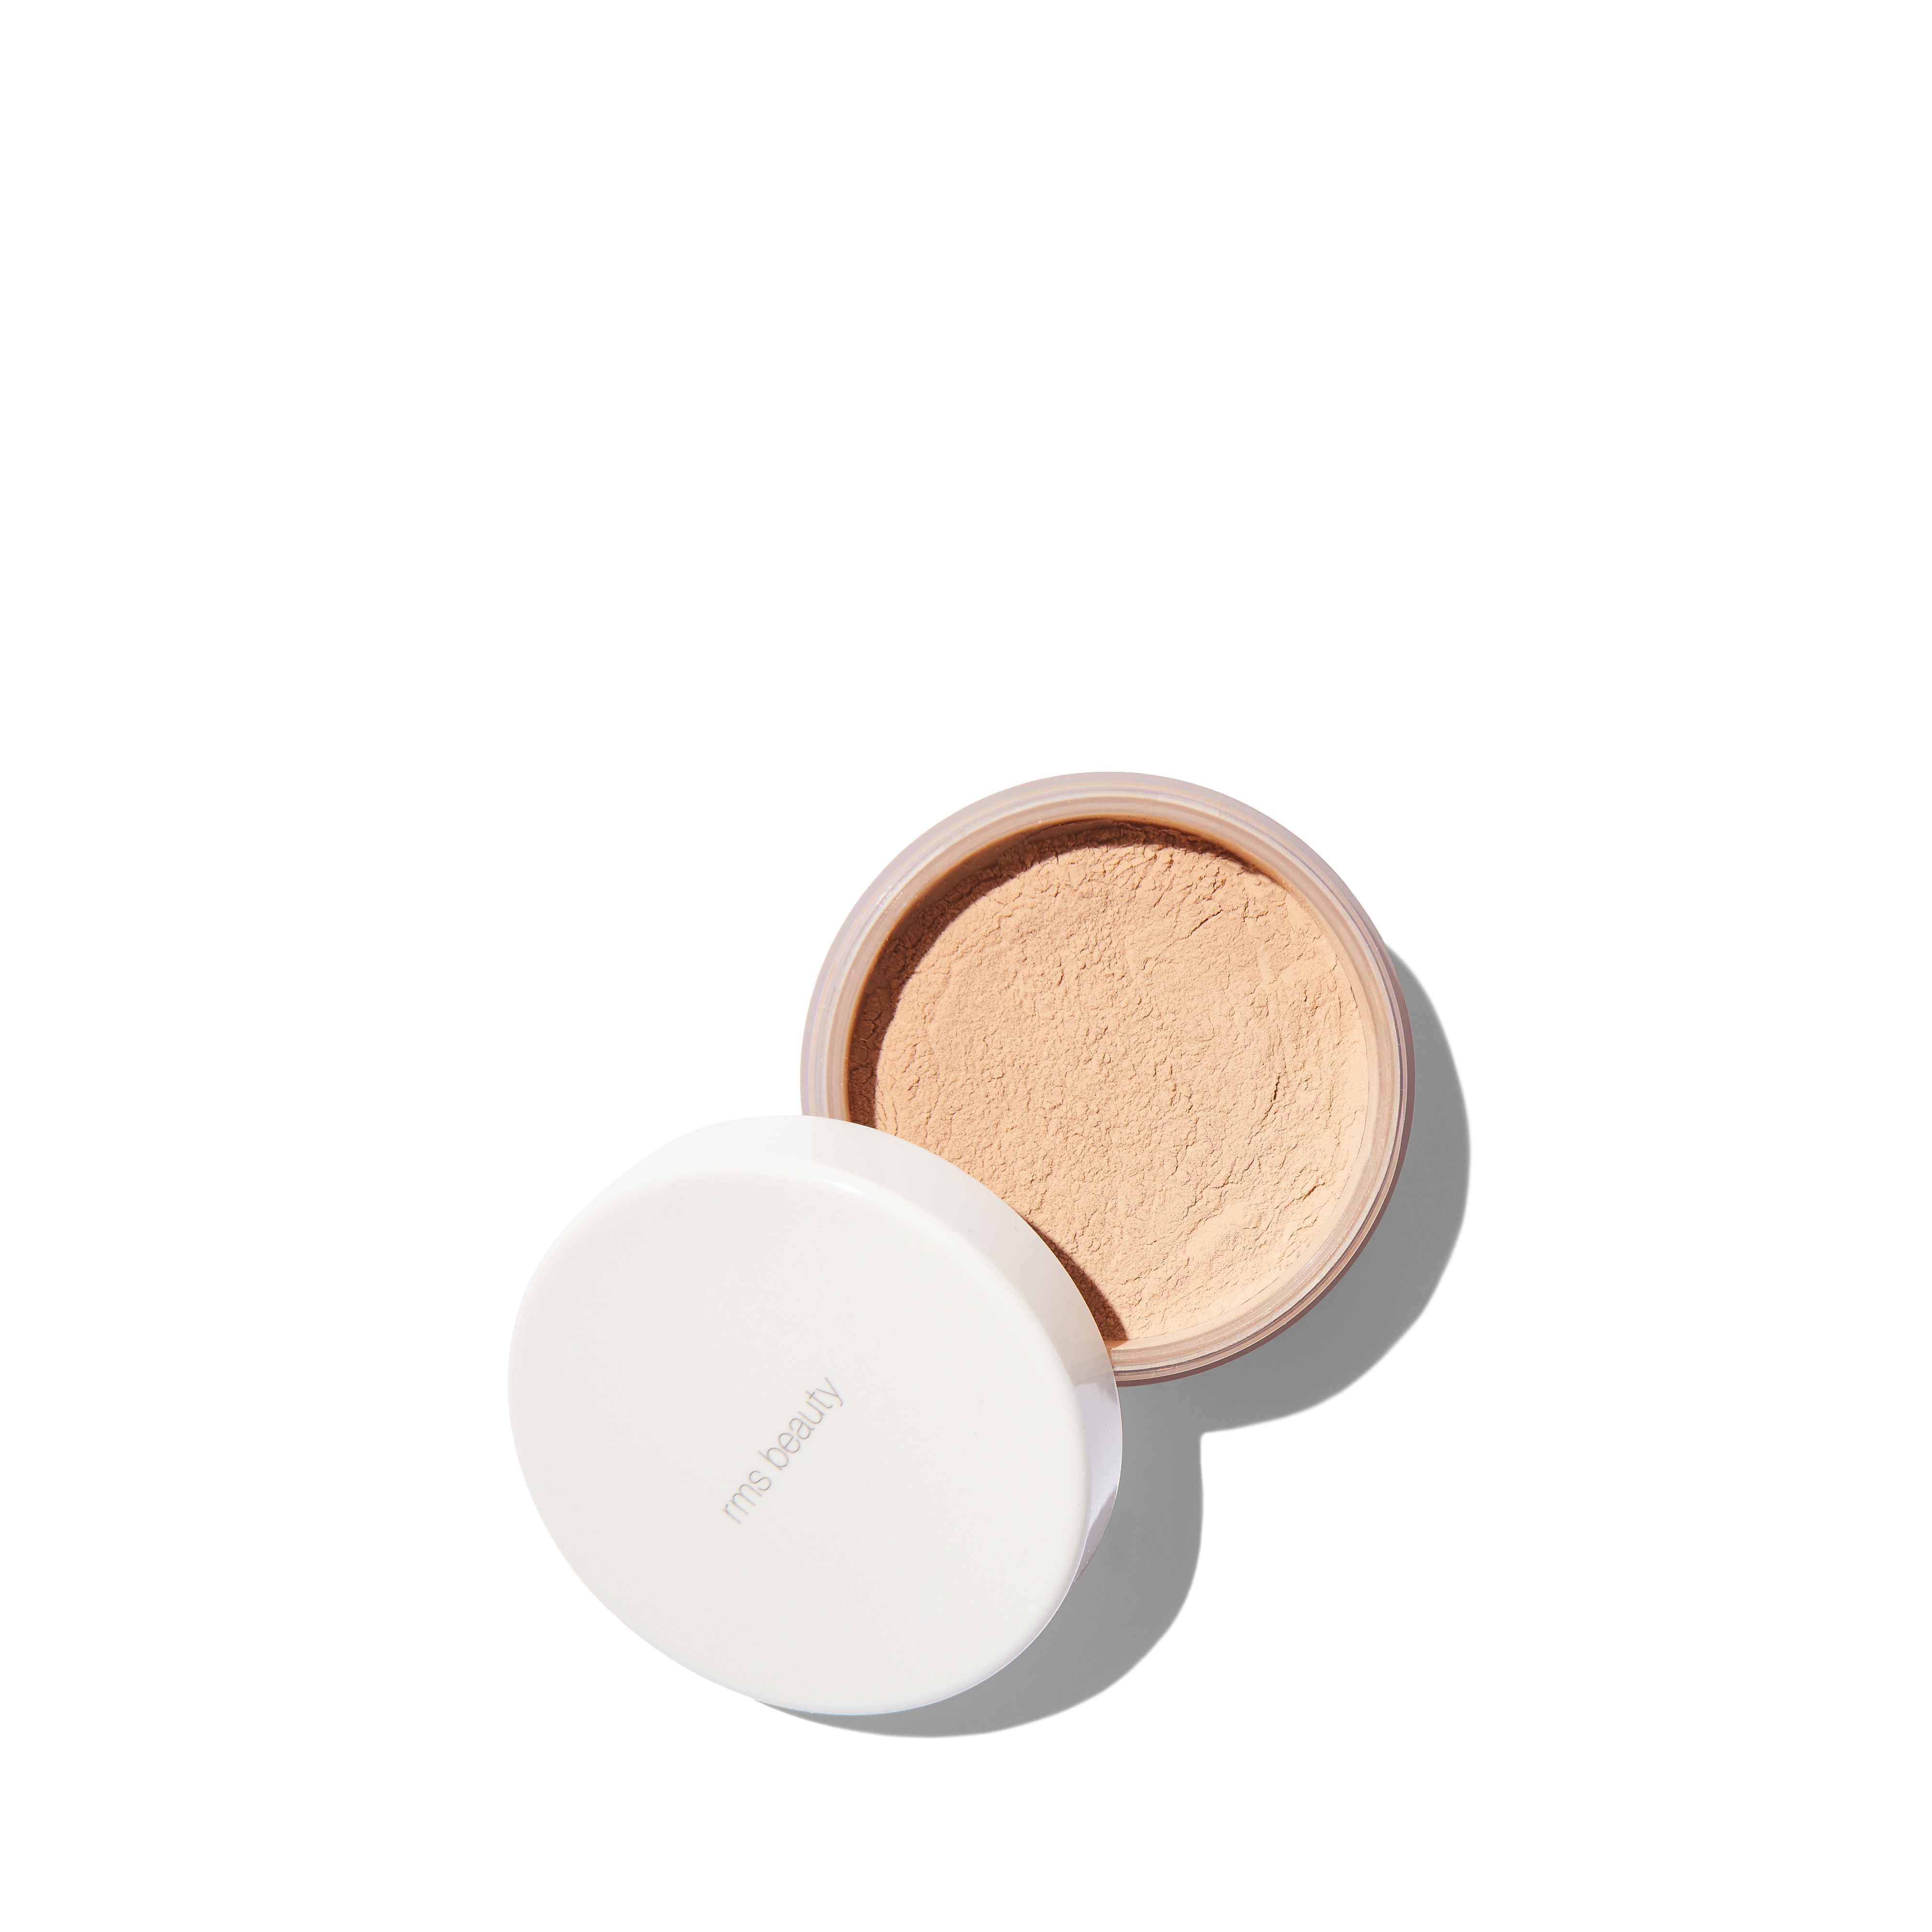 816248020027 - RMS Beauty Tinted